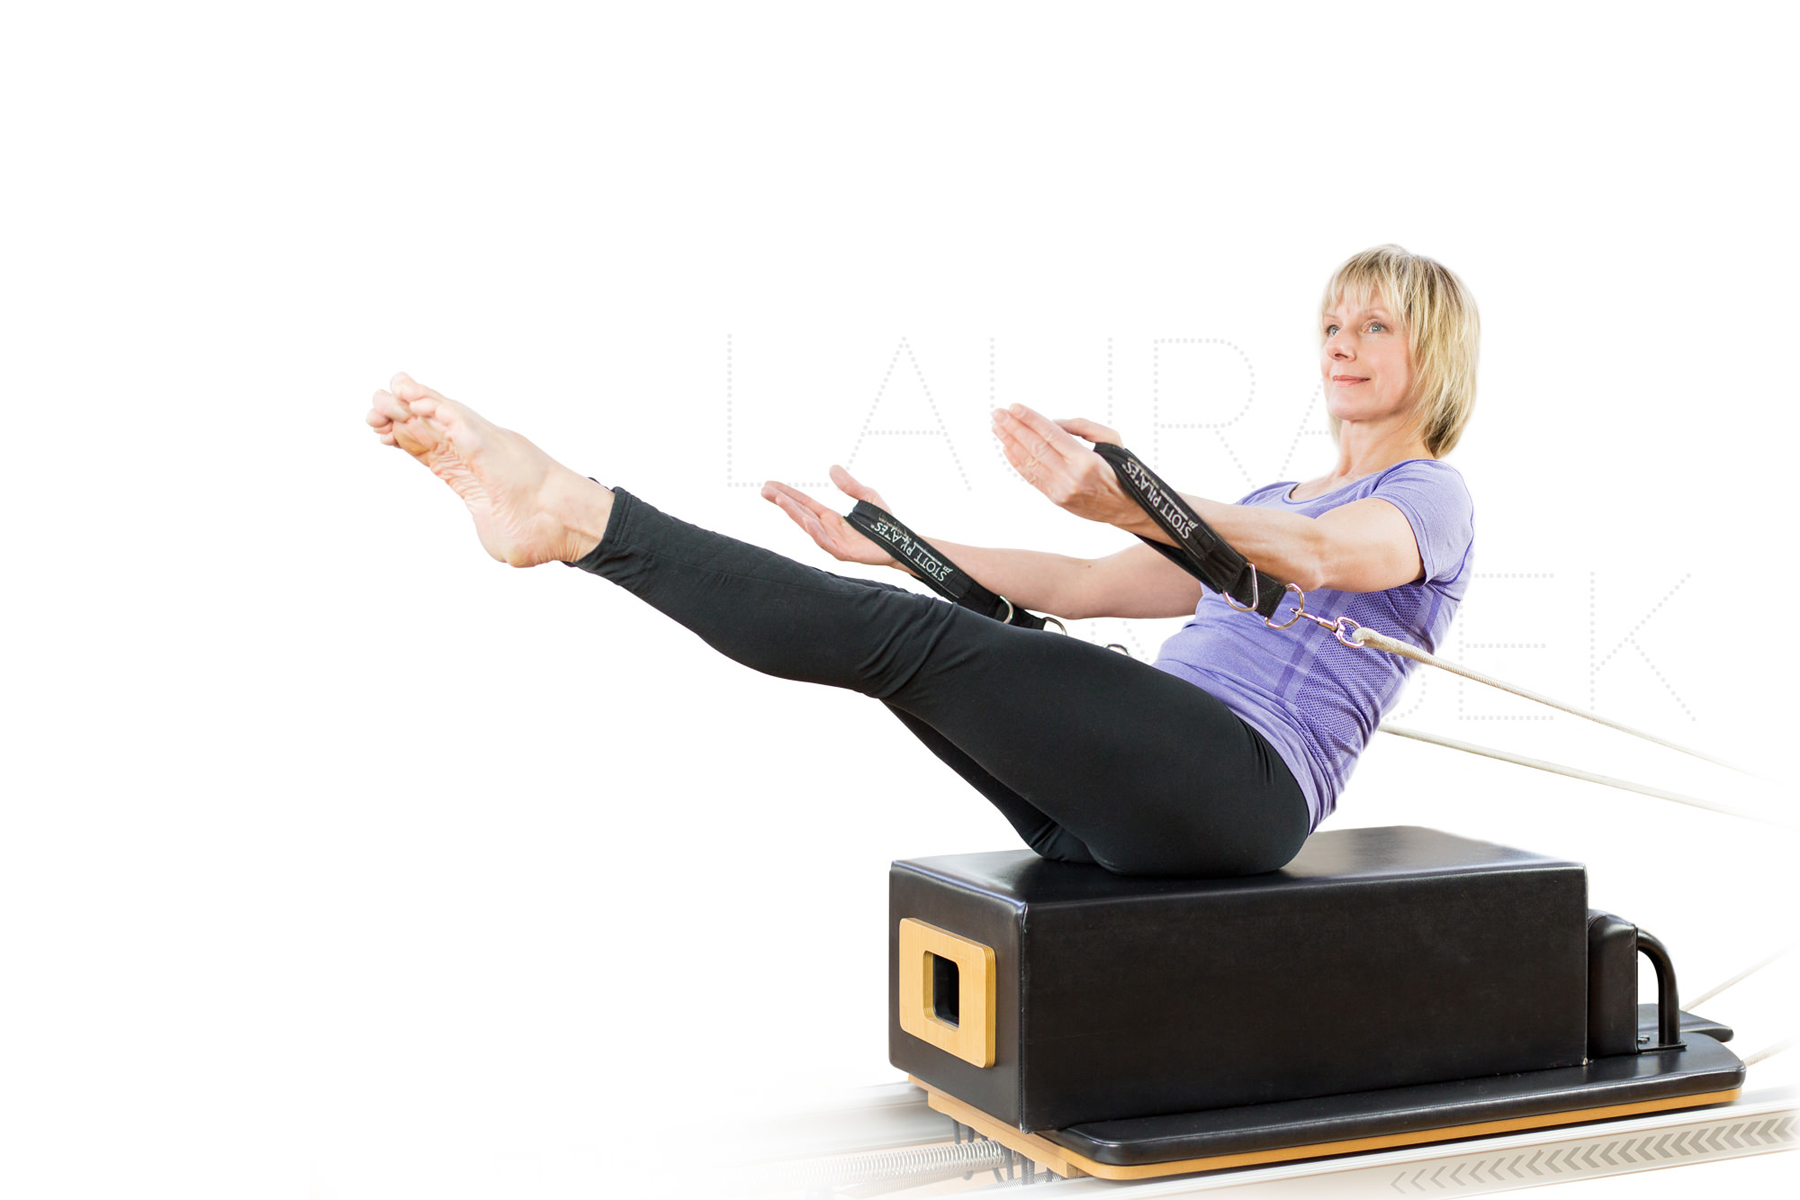 Laura Misek on the Reformer